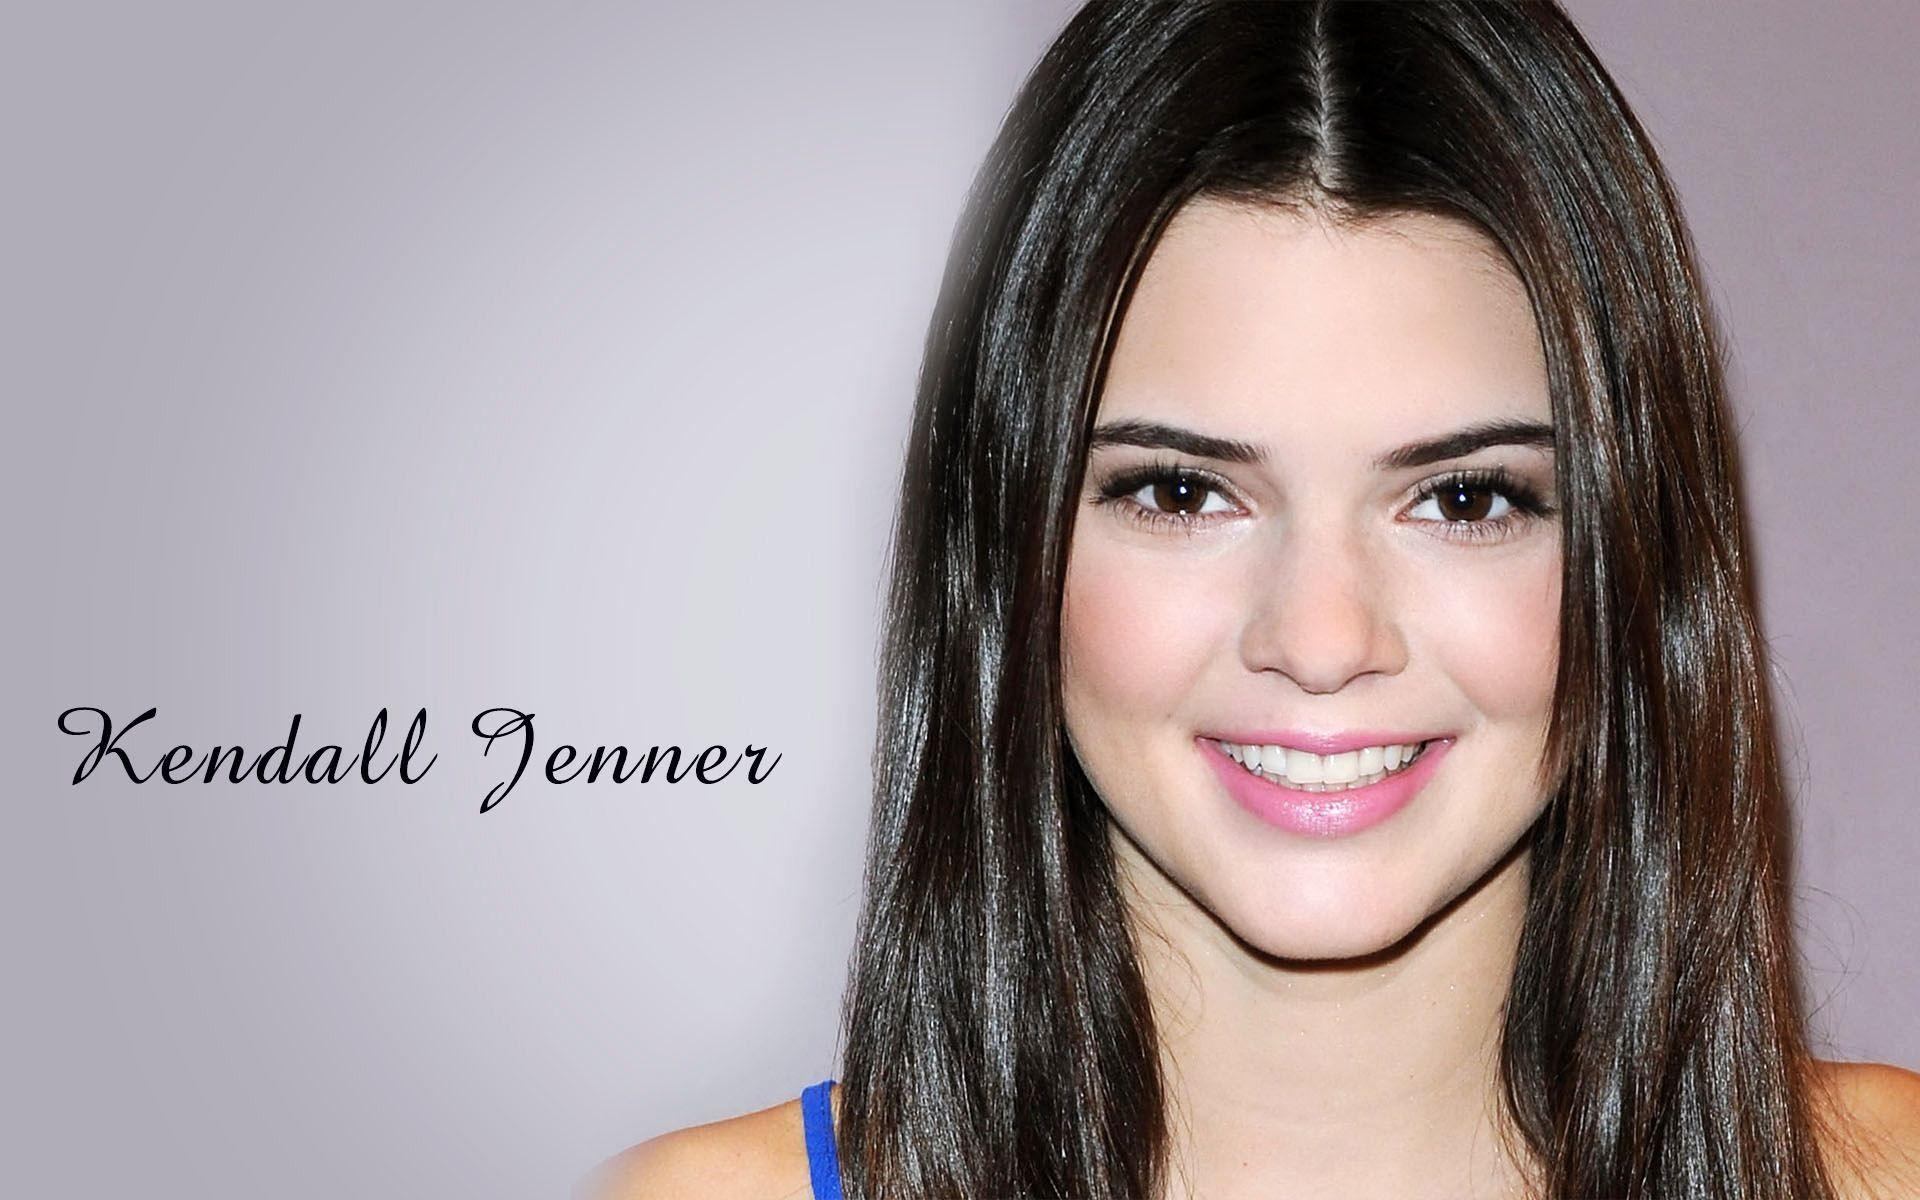 Kendall Jenner 2015 Wallpapers